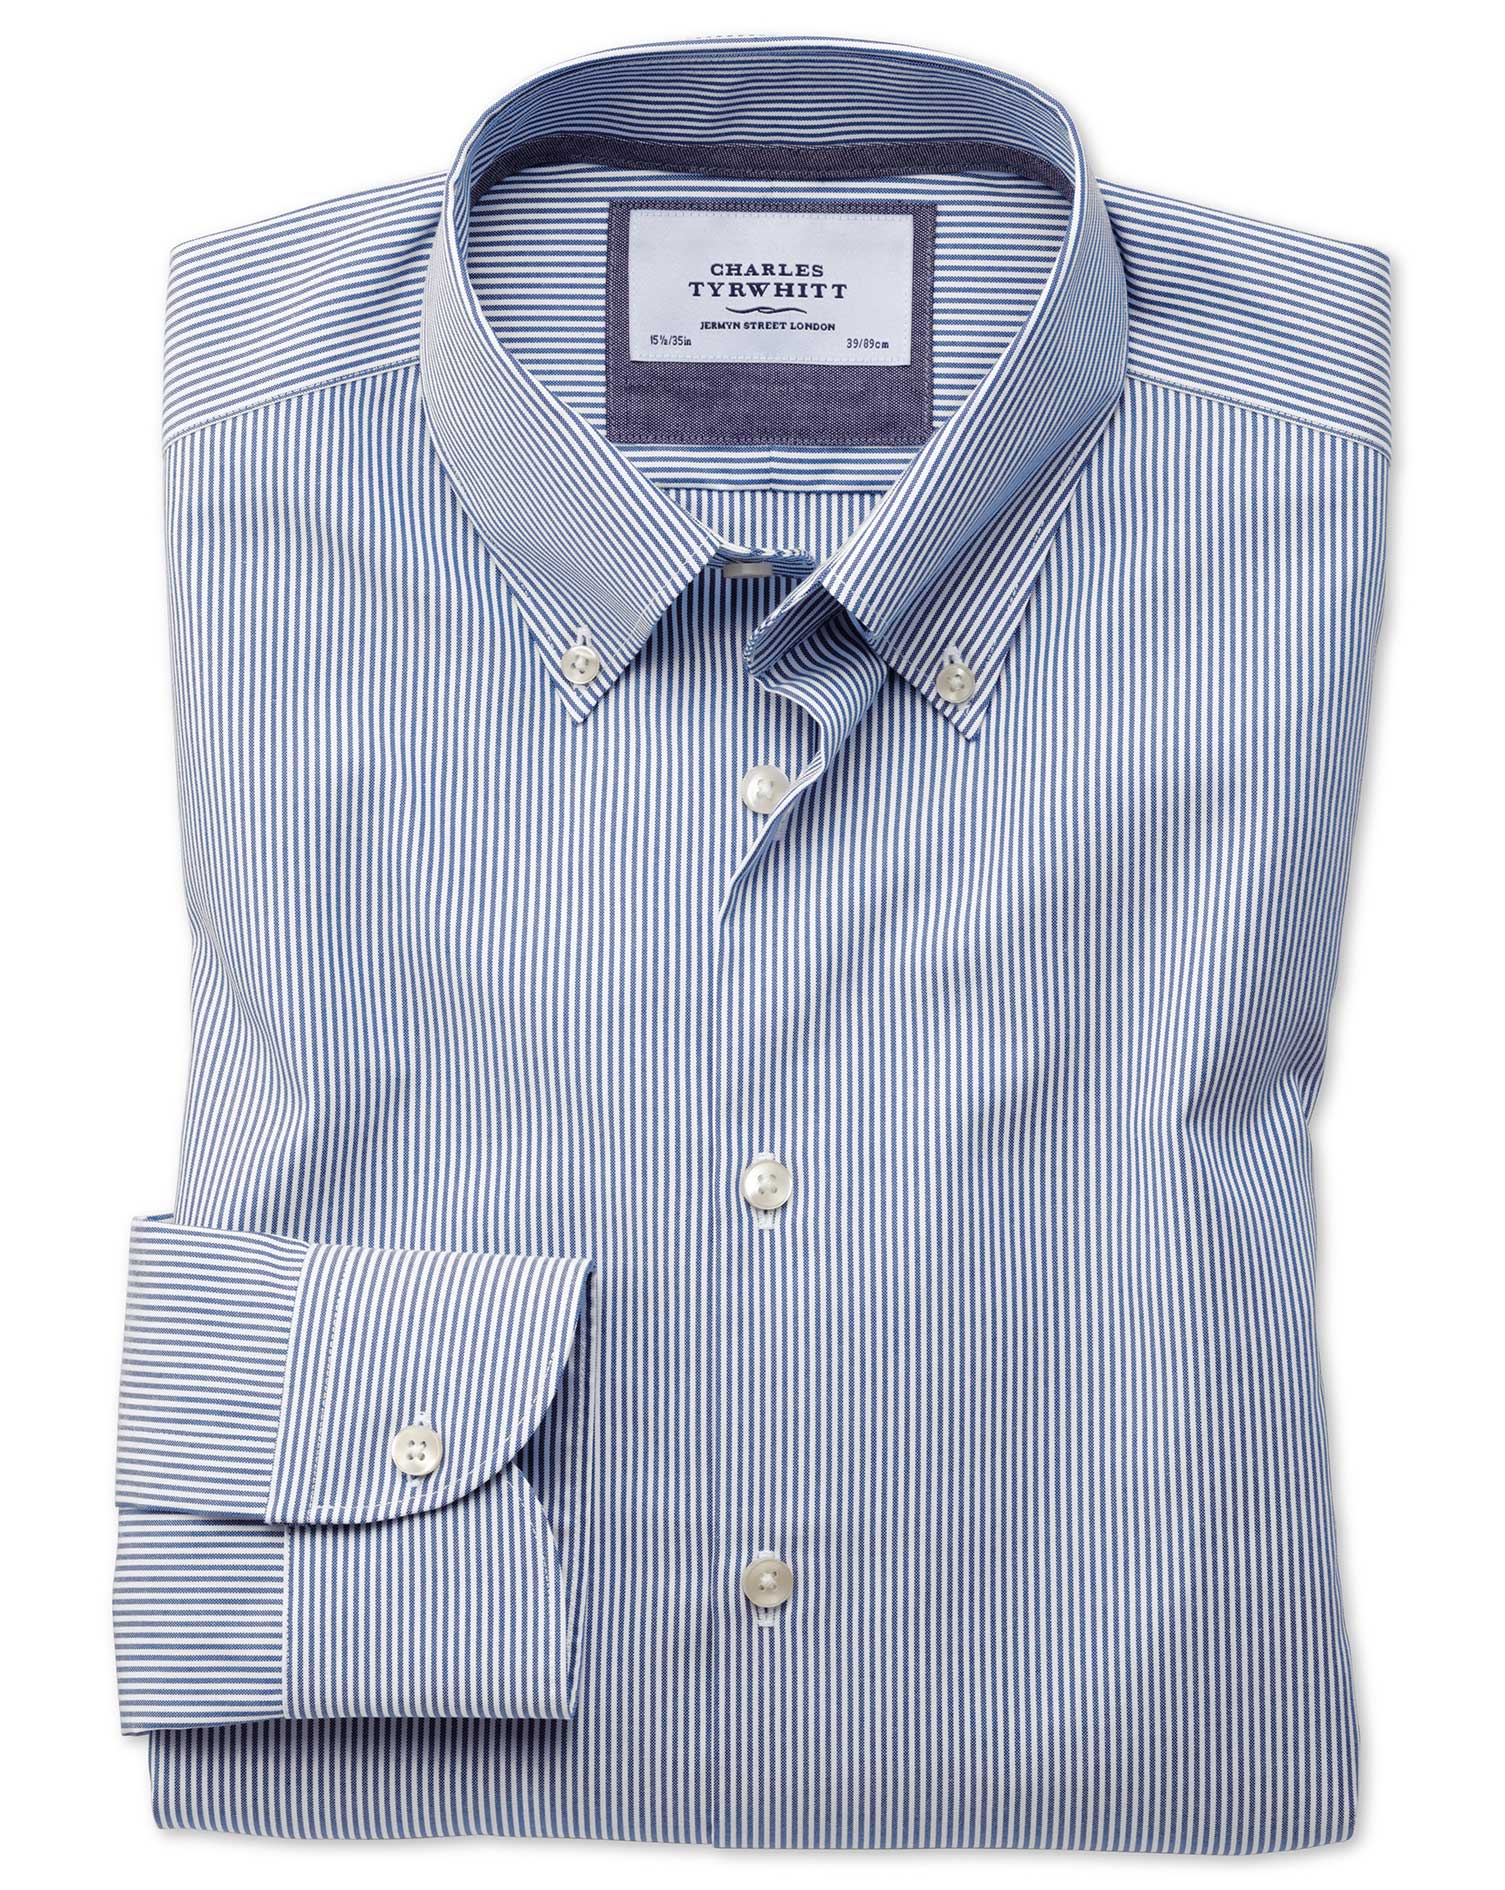 Slim Fit Button-Down Business Casual Non-Iron Blue Stripe Cotton Formal Shirt Single Cuff Size 15.5/